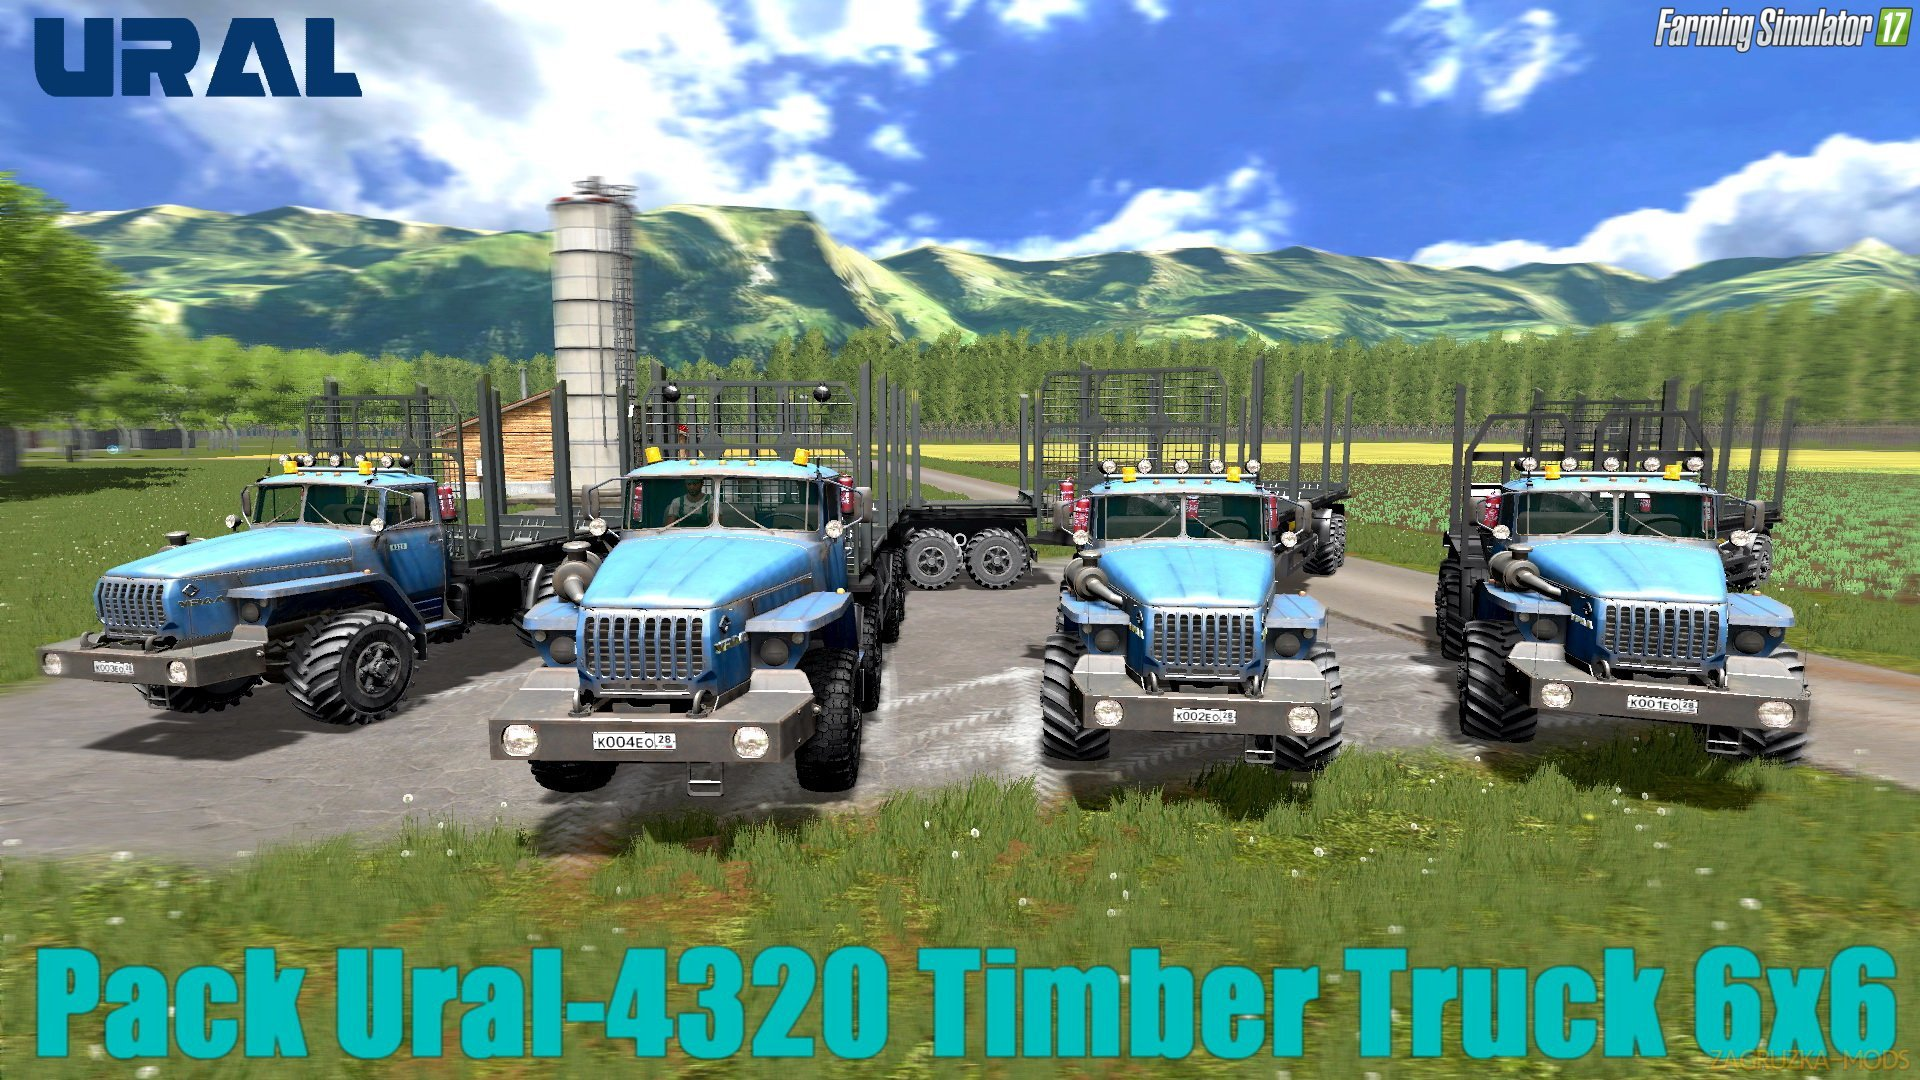 Pack Ural-4320 Timber Truck 6x6 + Trailers v1.2 for FS 17